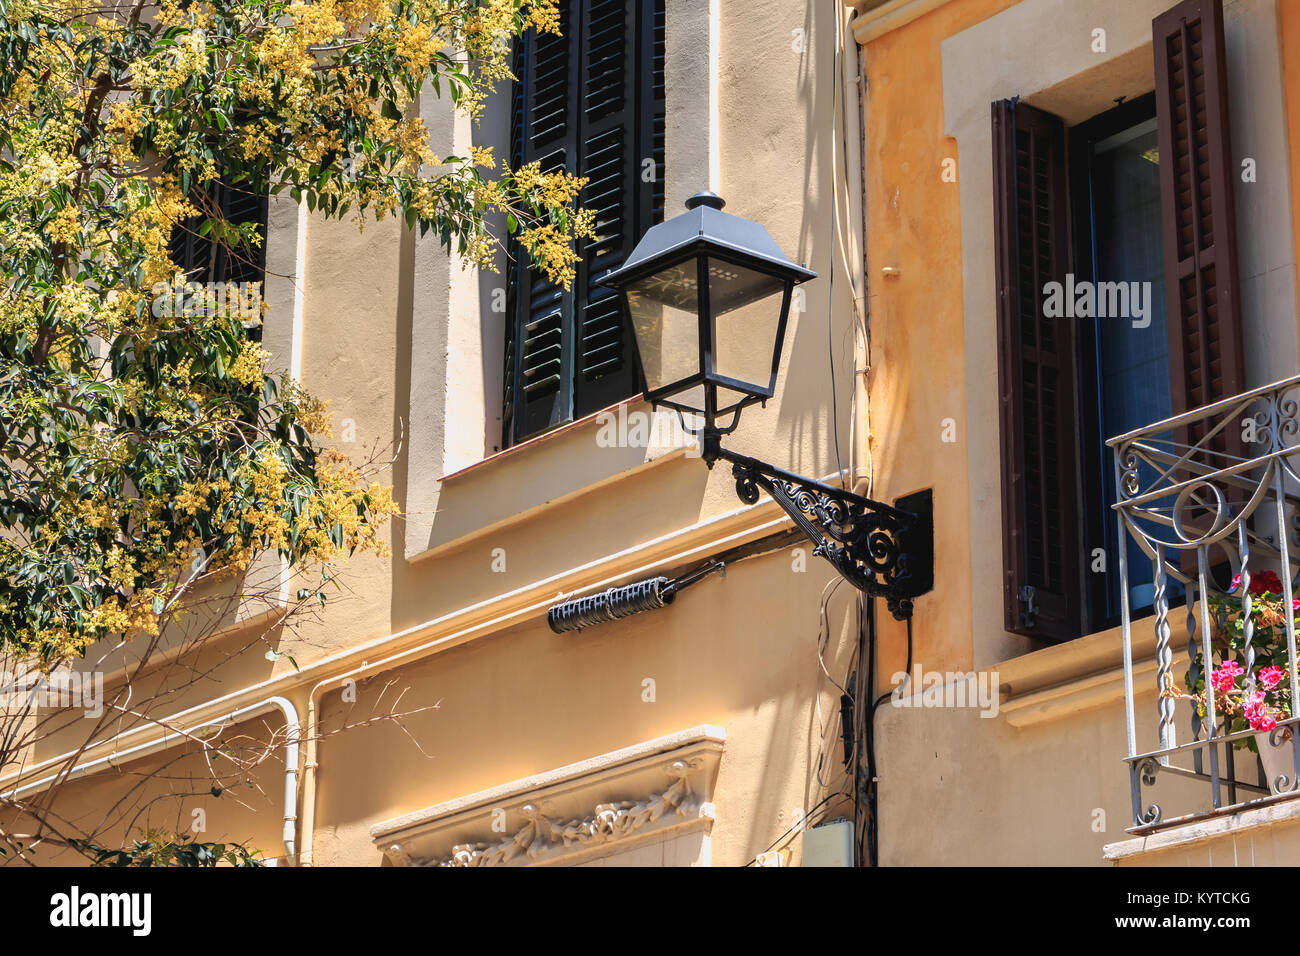 typical street lighting in the center of barcelona, spain - Stock Image